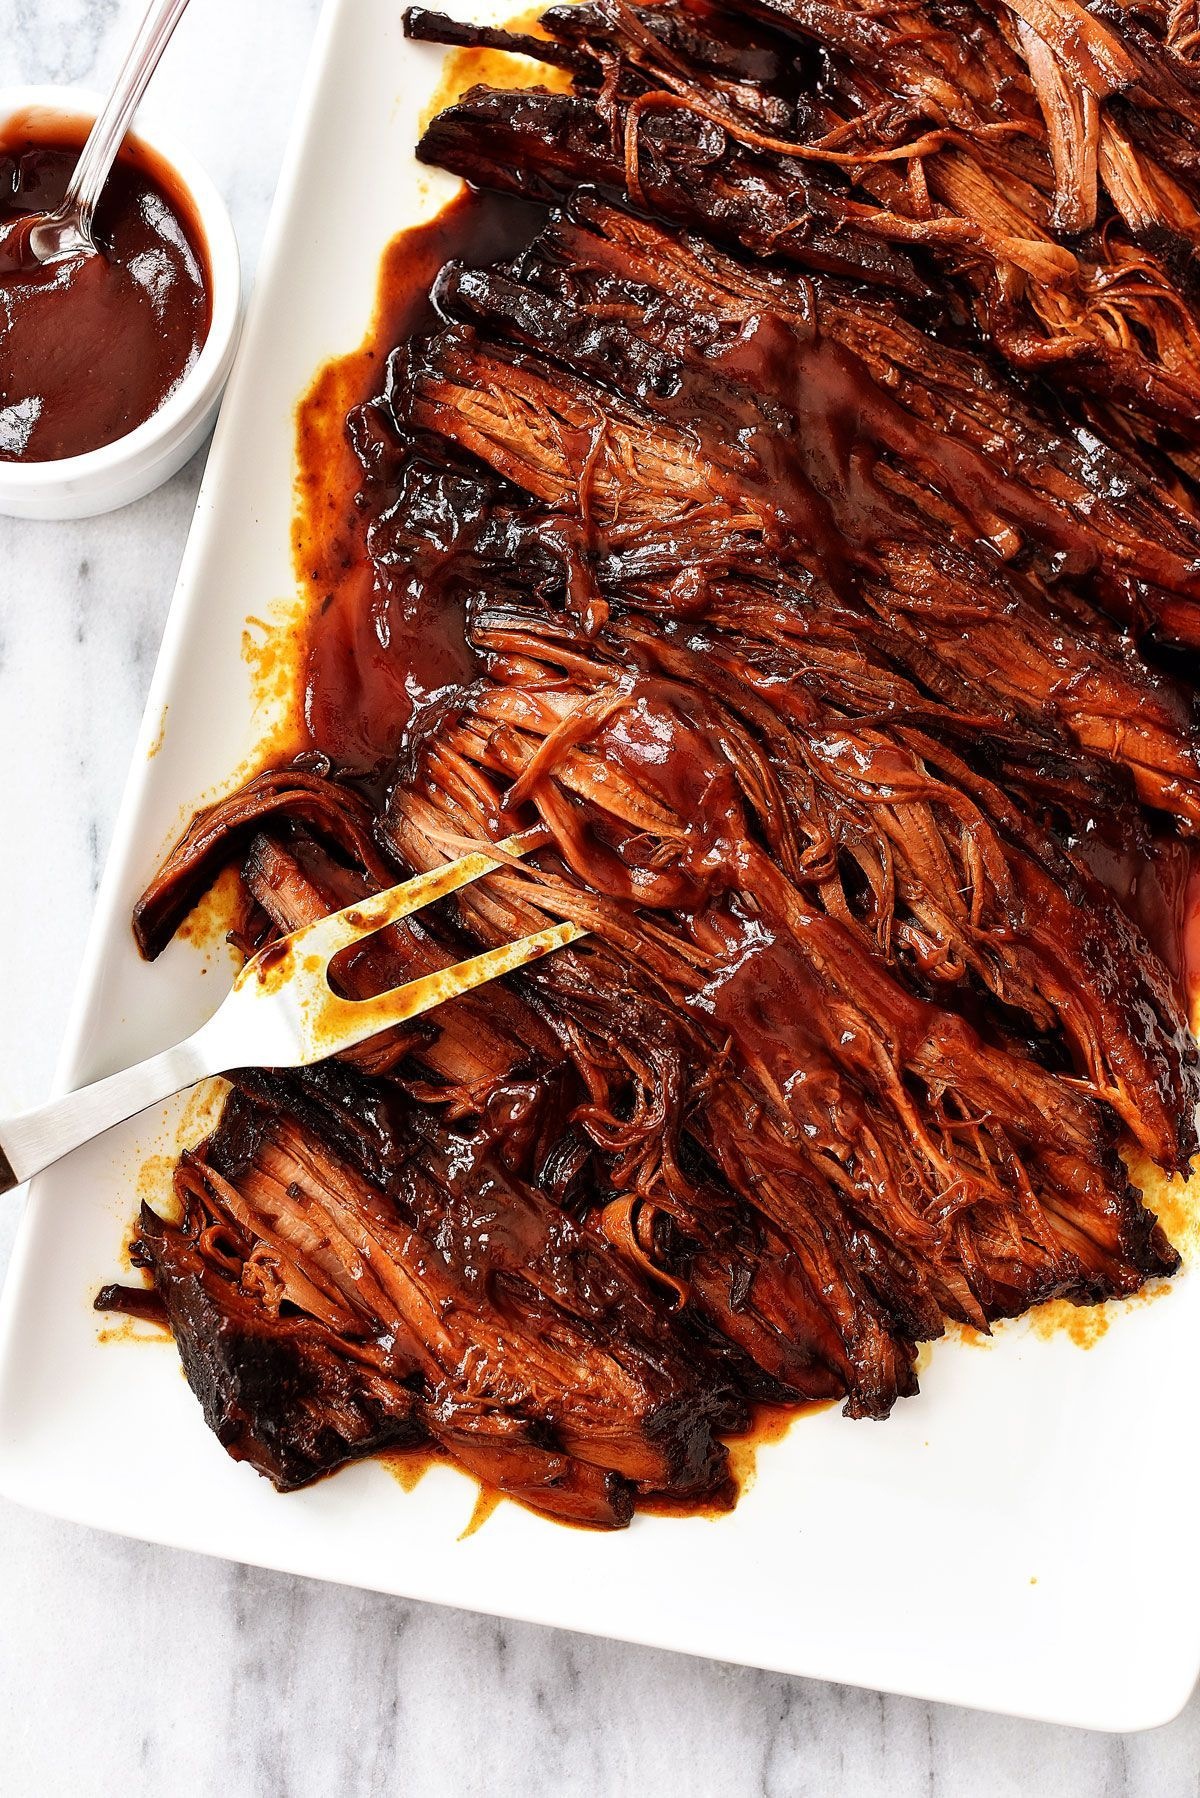 Ing It For The 12 Hours Or Longer Makes It Extra Tender Cooking Brisket In A Shorter Time Will R Slow Cooker Bbq Beef Bbq Brisket Recipes Beef Brisket Recipes